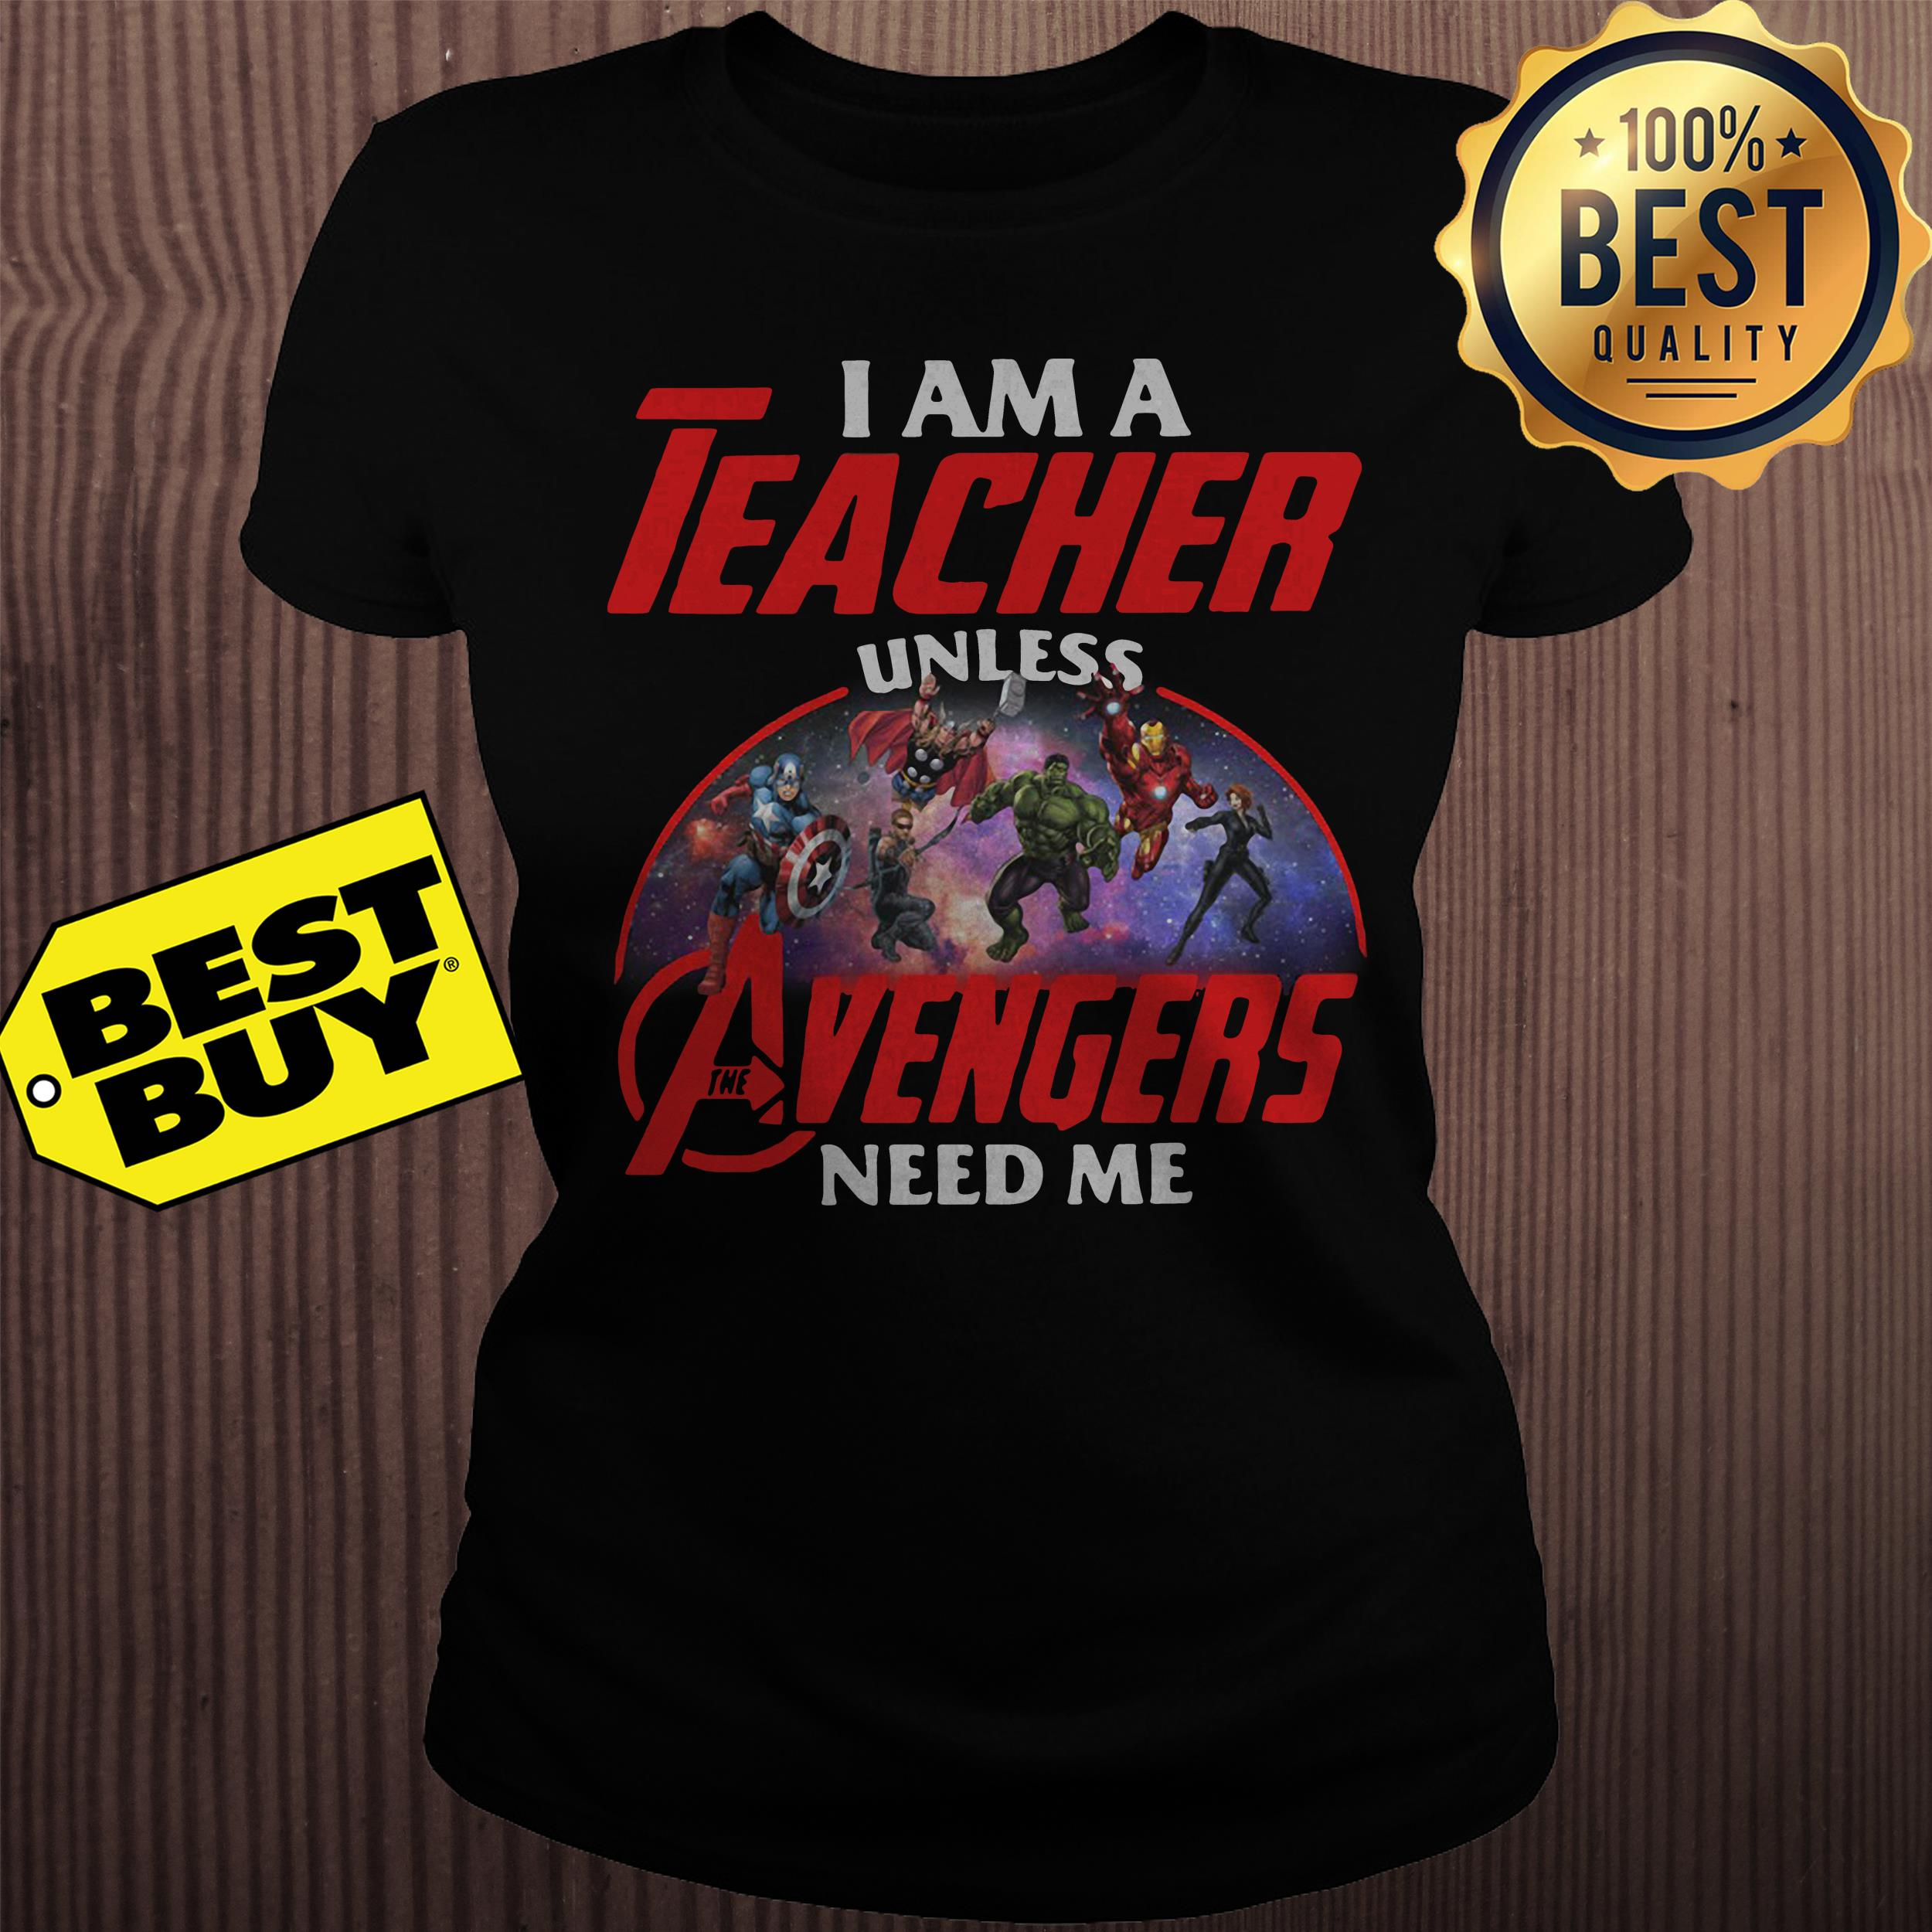 I am a teacher unless Avengers need me ladies tee